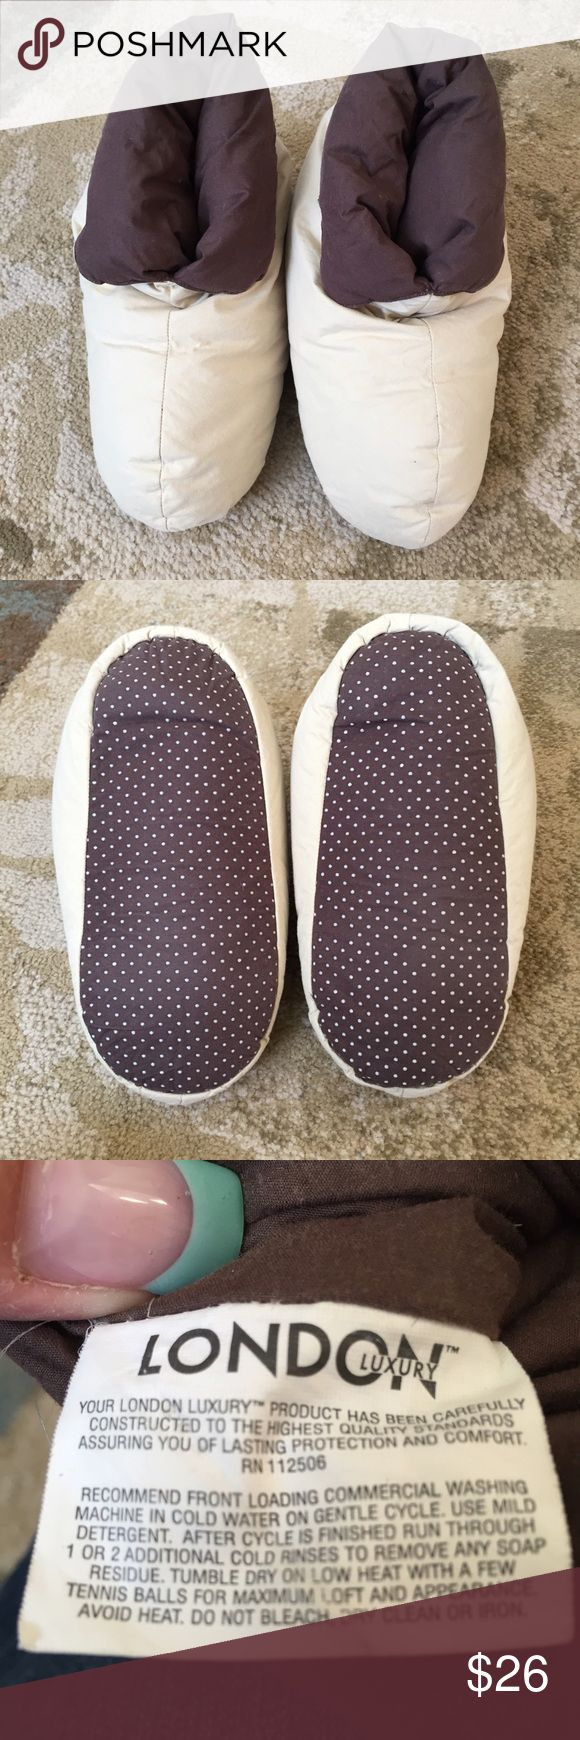 London Luxury down slippers Down slippers by London Luxury.  Cuff can be written up or down. No size noted on slippers, but fits 8/9. Only written a few times. Machine washable. London Luxury Shoes Slippers